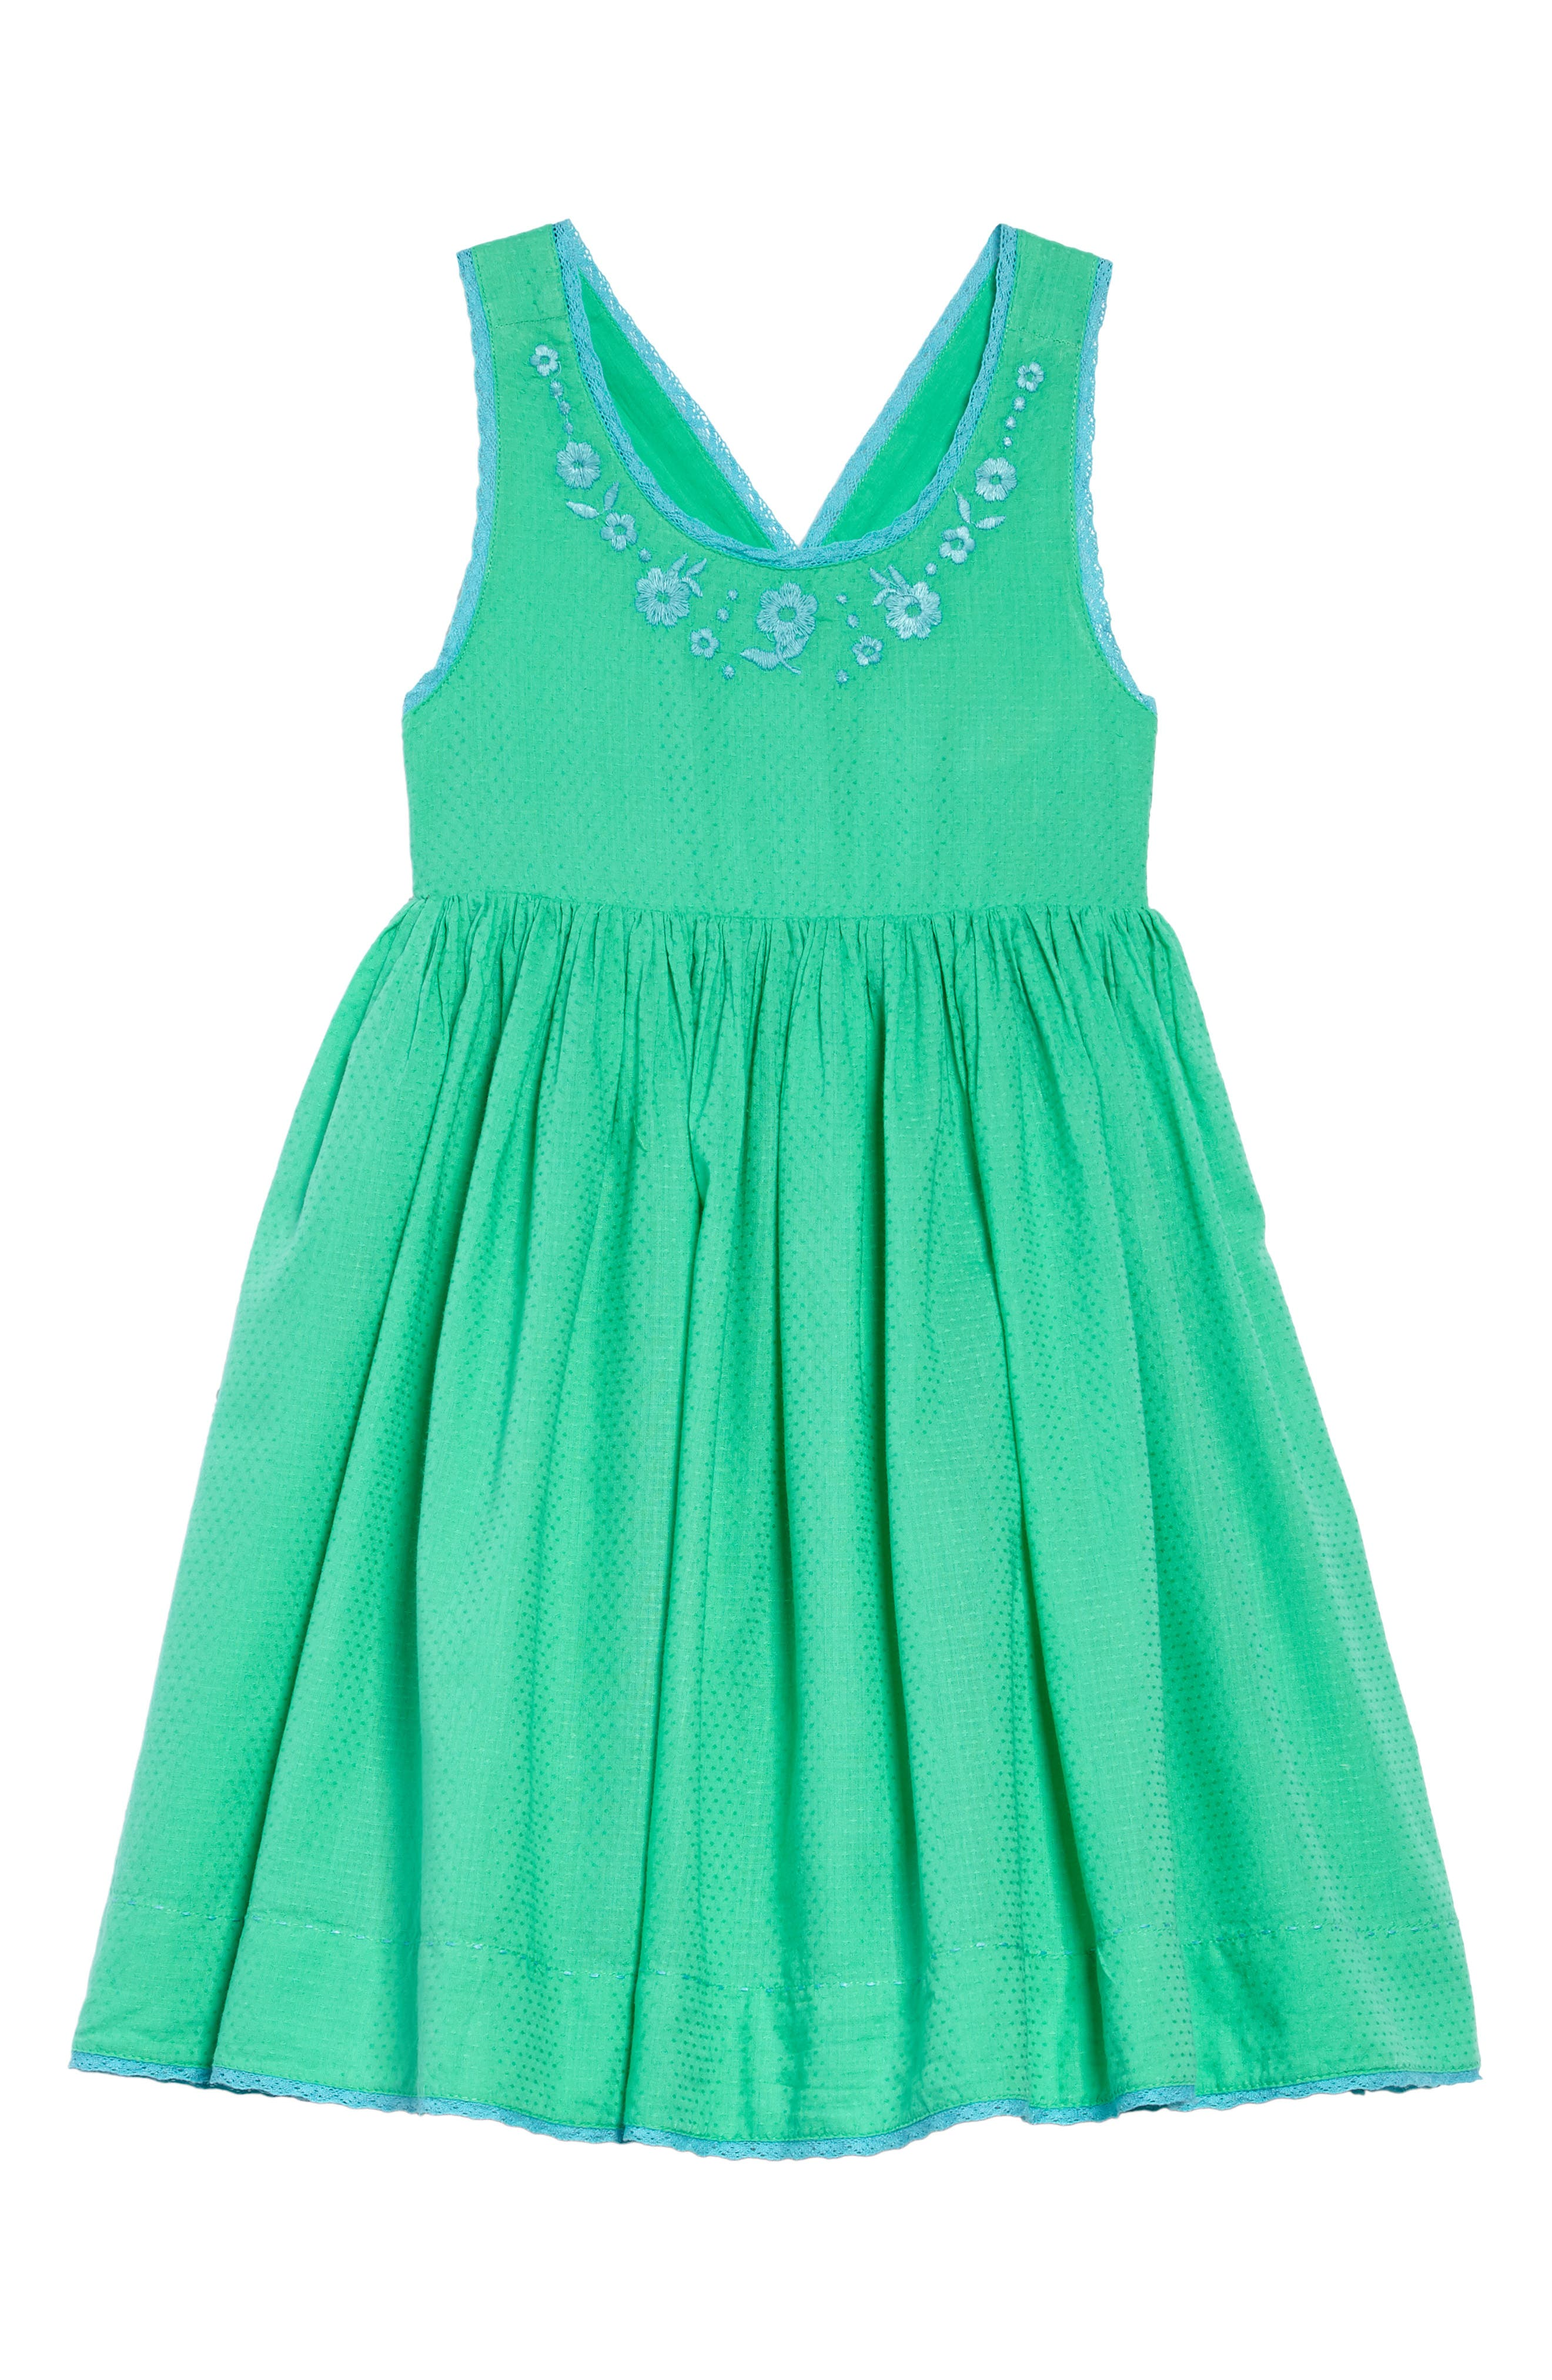 Embroidered Dress,                         Main,                         color, Peppermint Cream Green